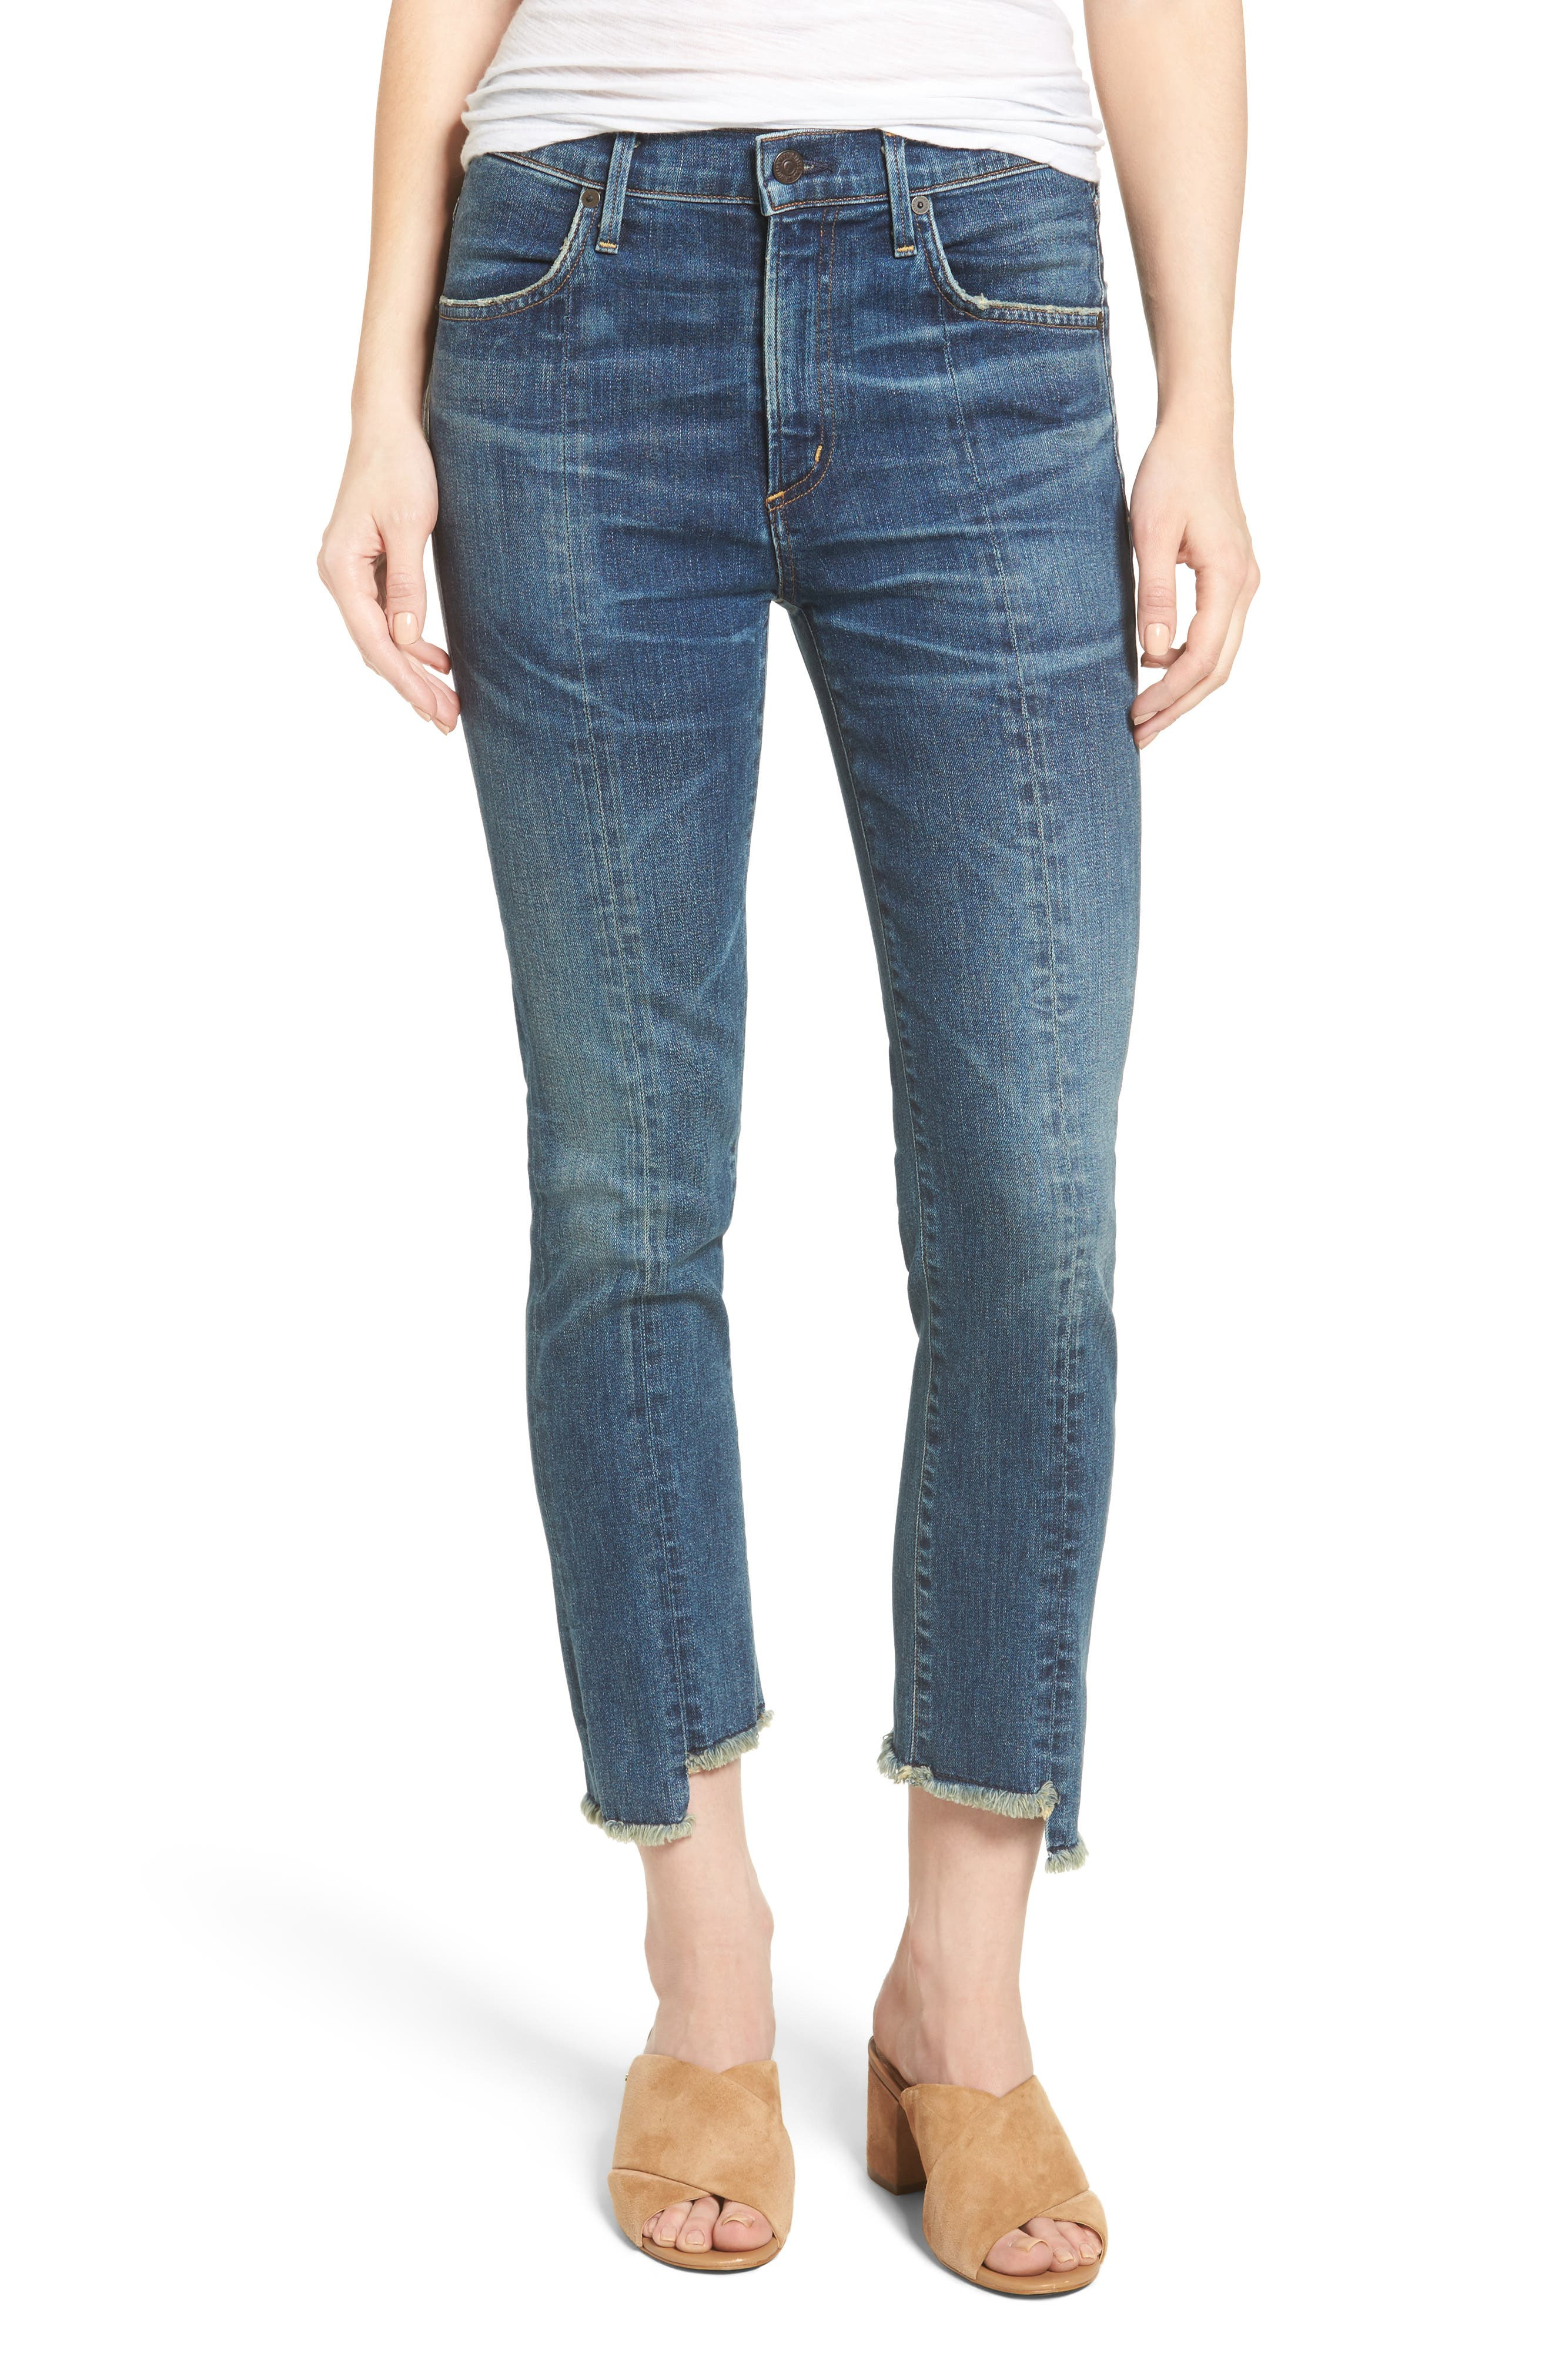 Alternate Image 1 Selected - Citizens of Humanity Amari Step Hem Ankle Jeans (Alterra)